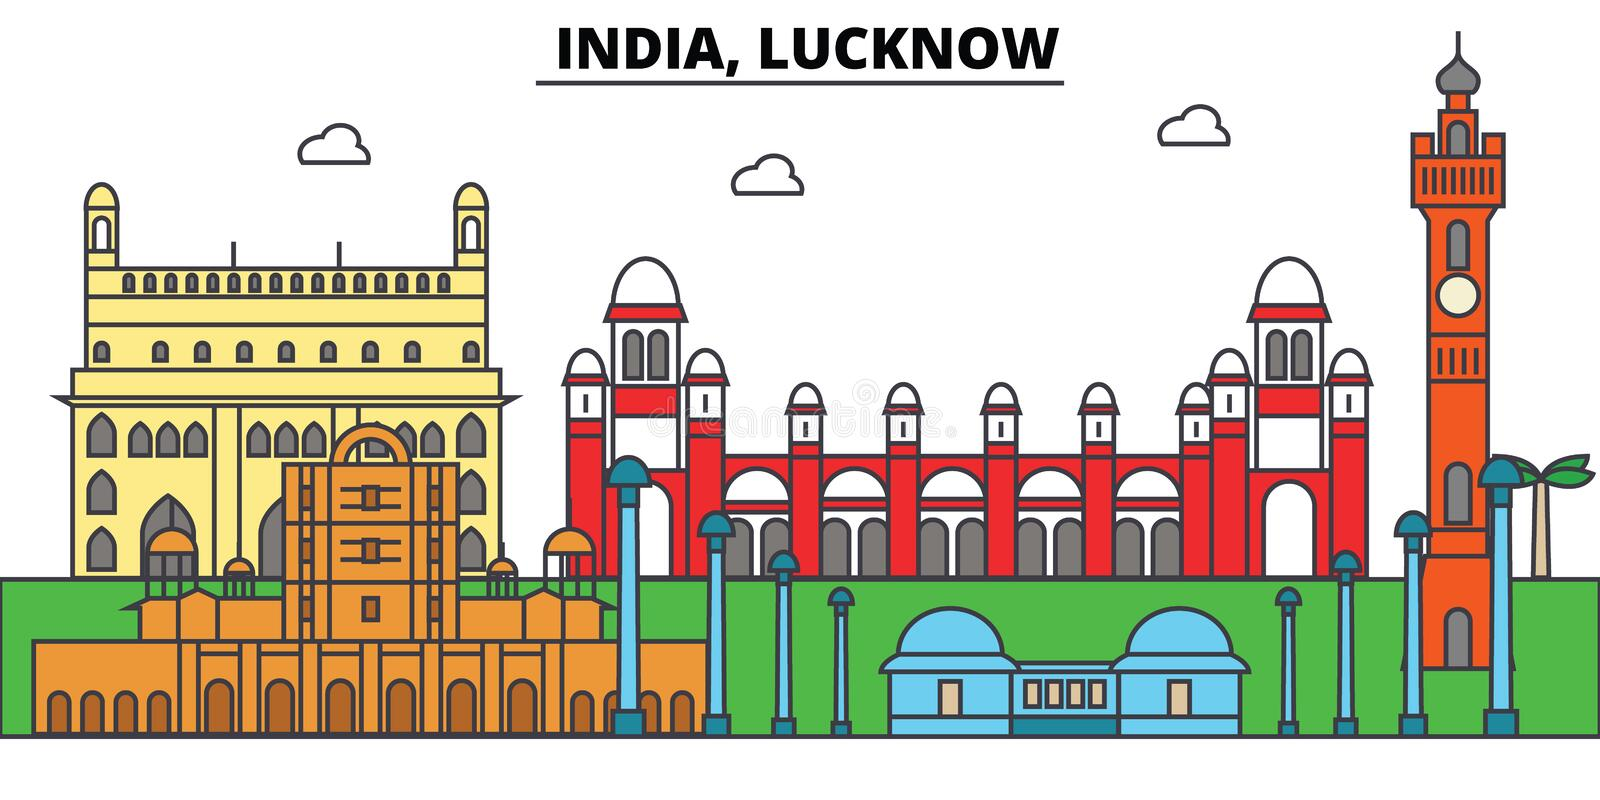 India, Lucknow, Hinduism. City skyline, architecture, buildings, streets, silhouette, landscape, panorama, landmarks. India, Lucknow, Hinduism. City skyline stock illustration